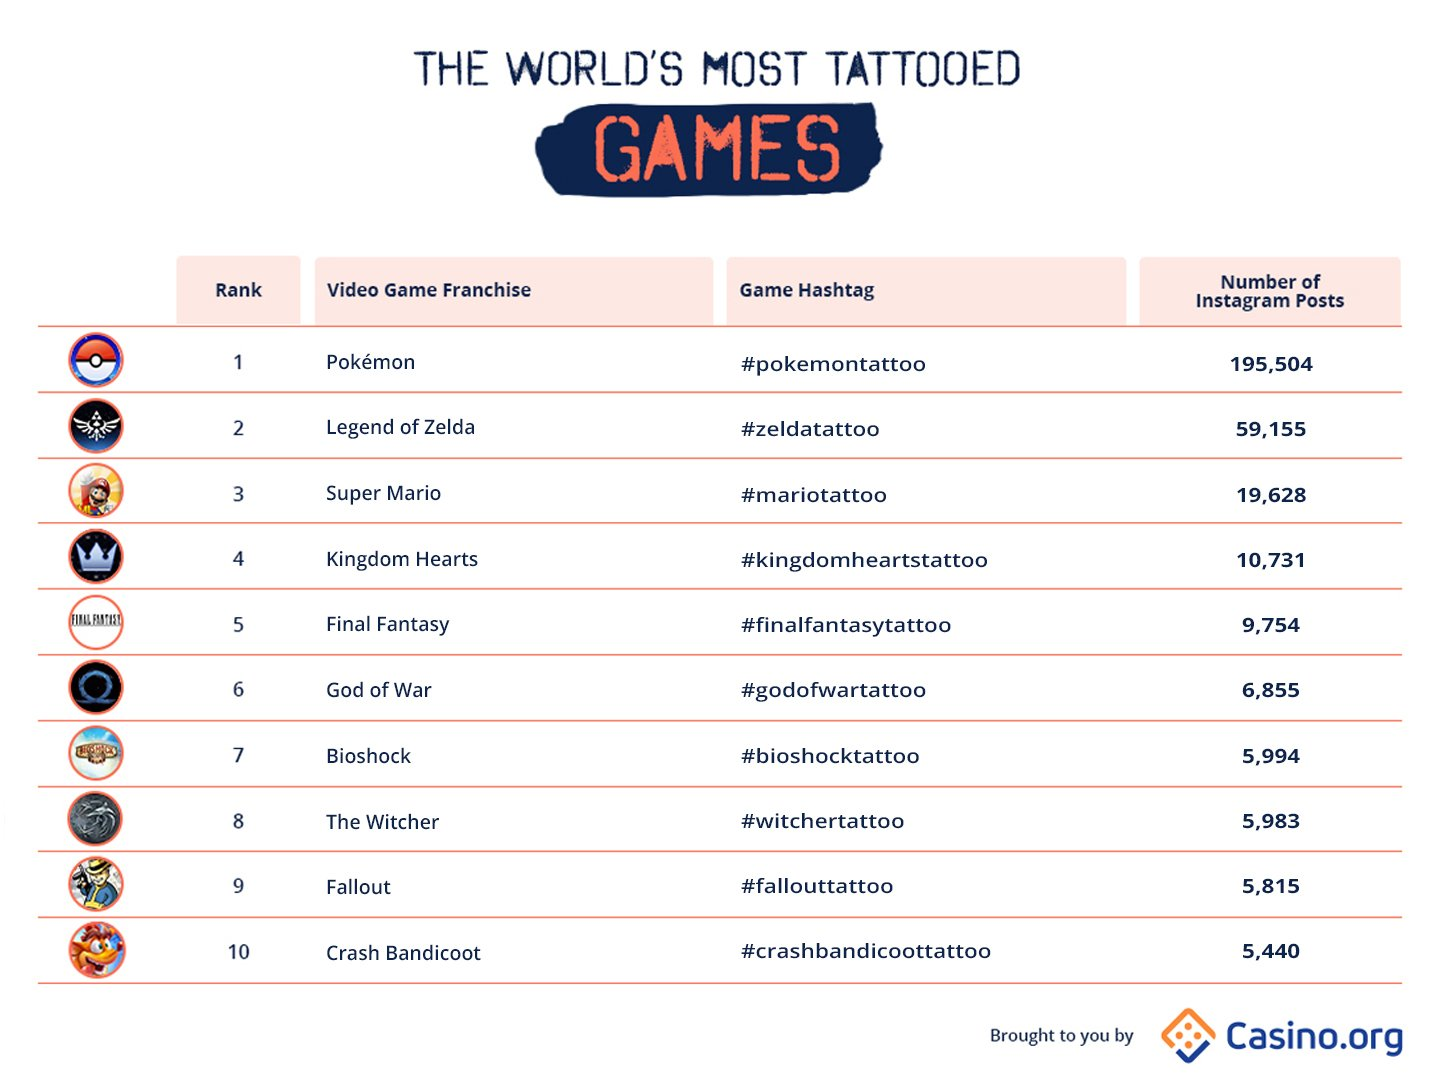 most tattooed games in the world